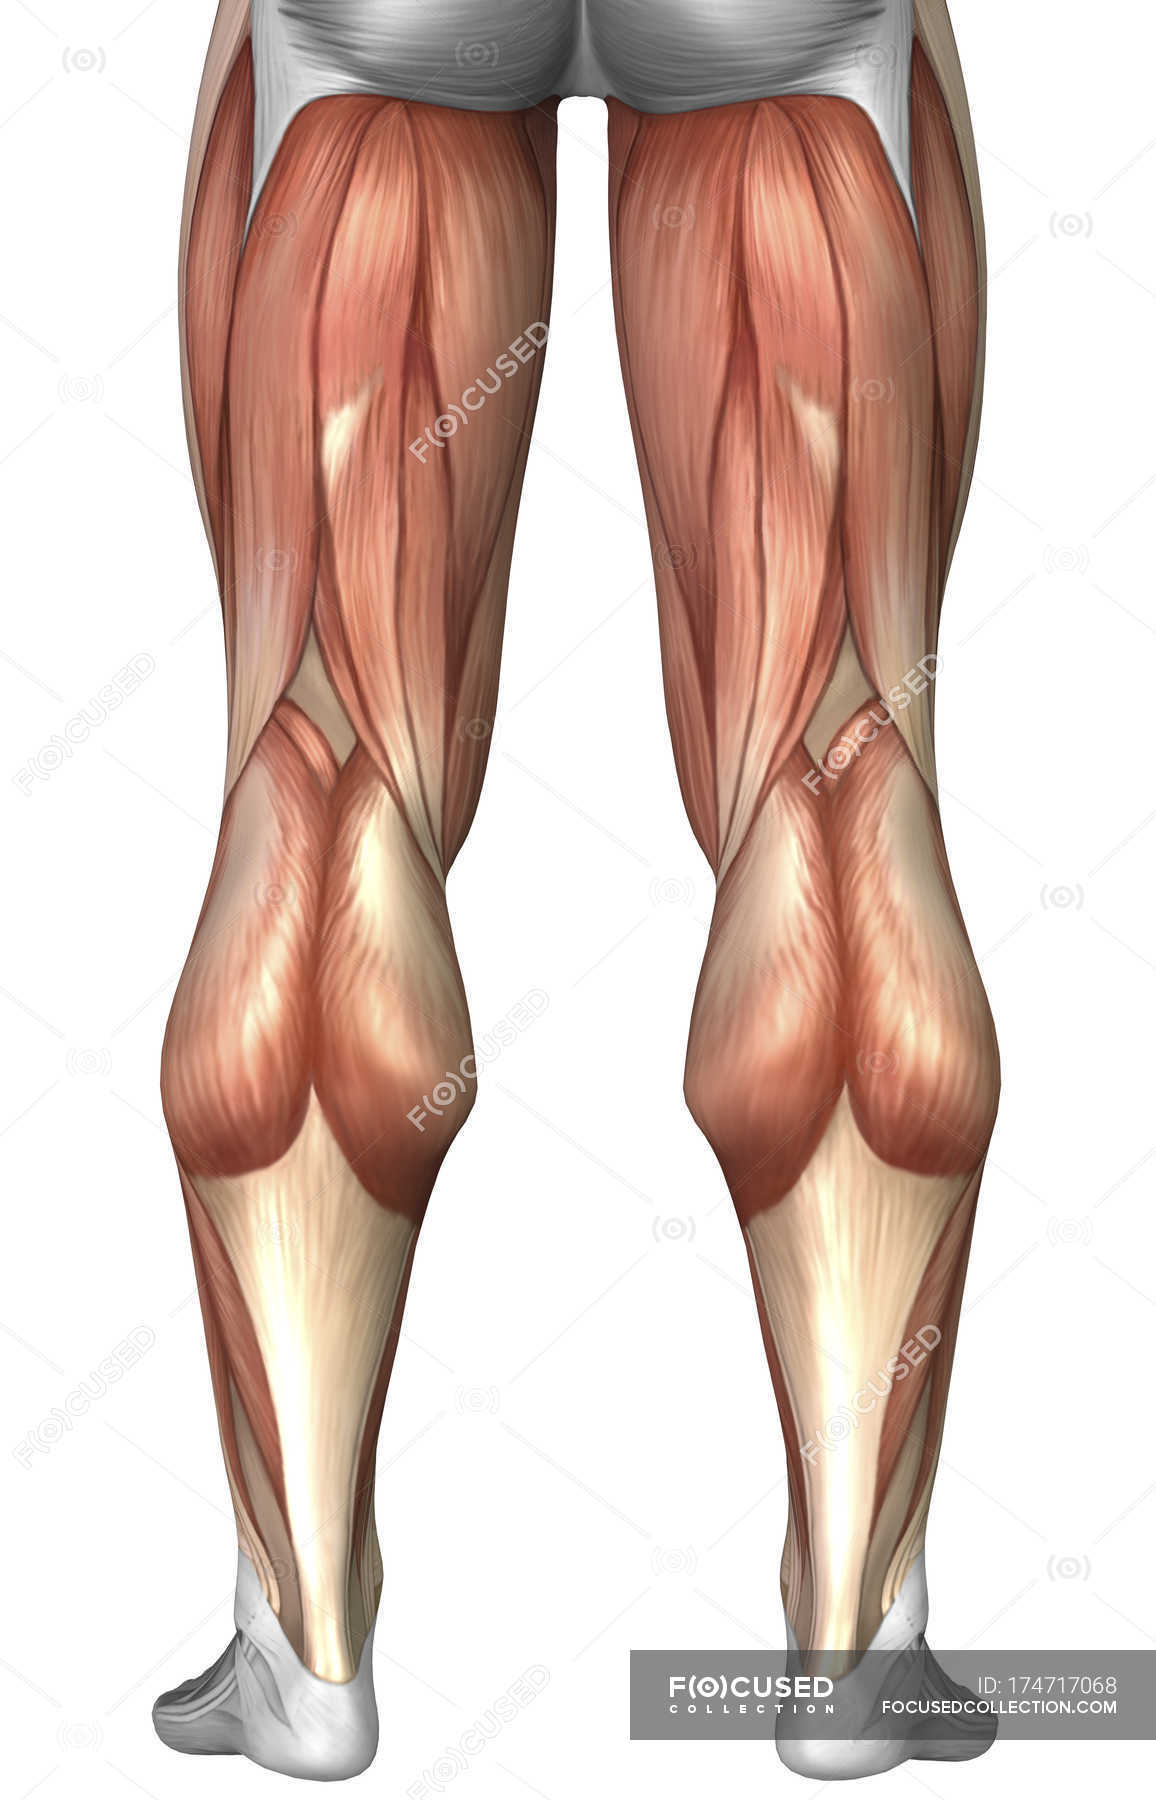 Diagram Illustrating Muscle Groups On Back Of Human Legs Rear View